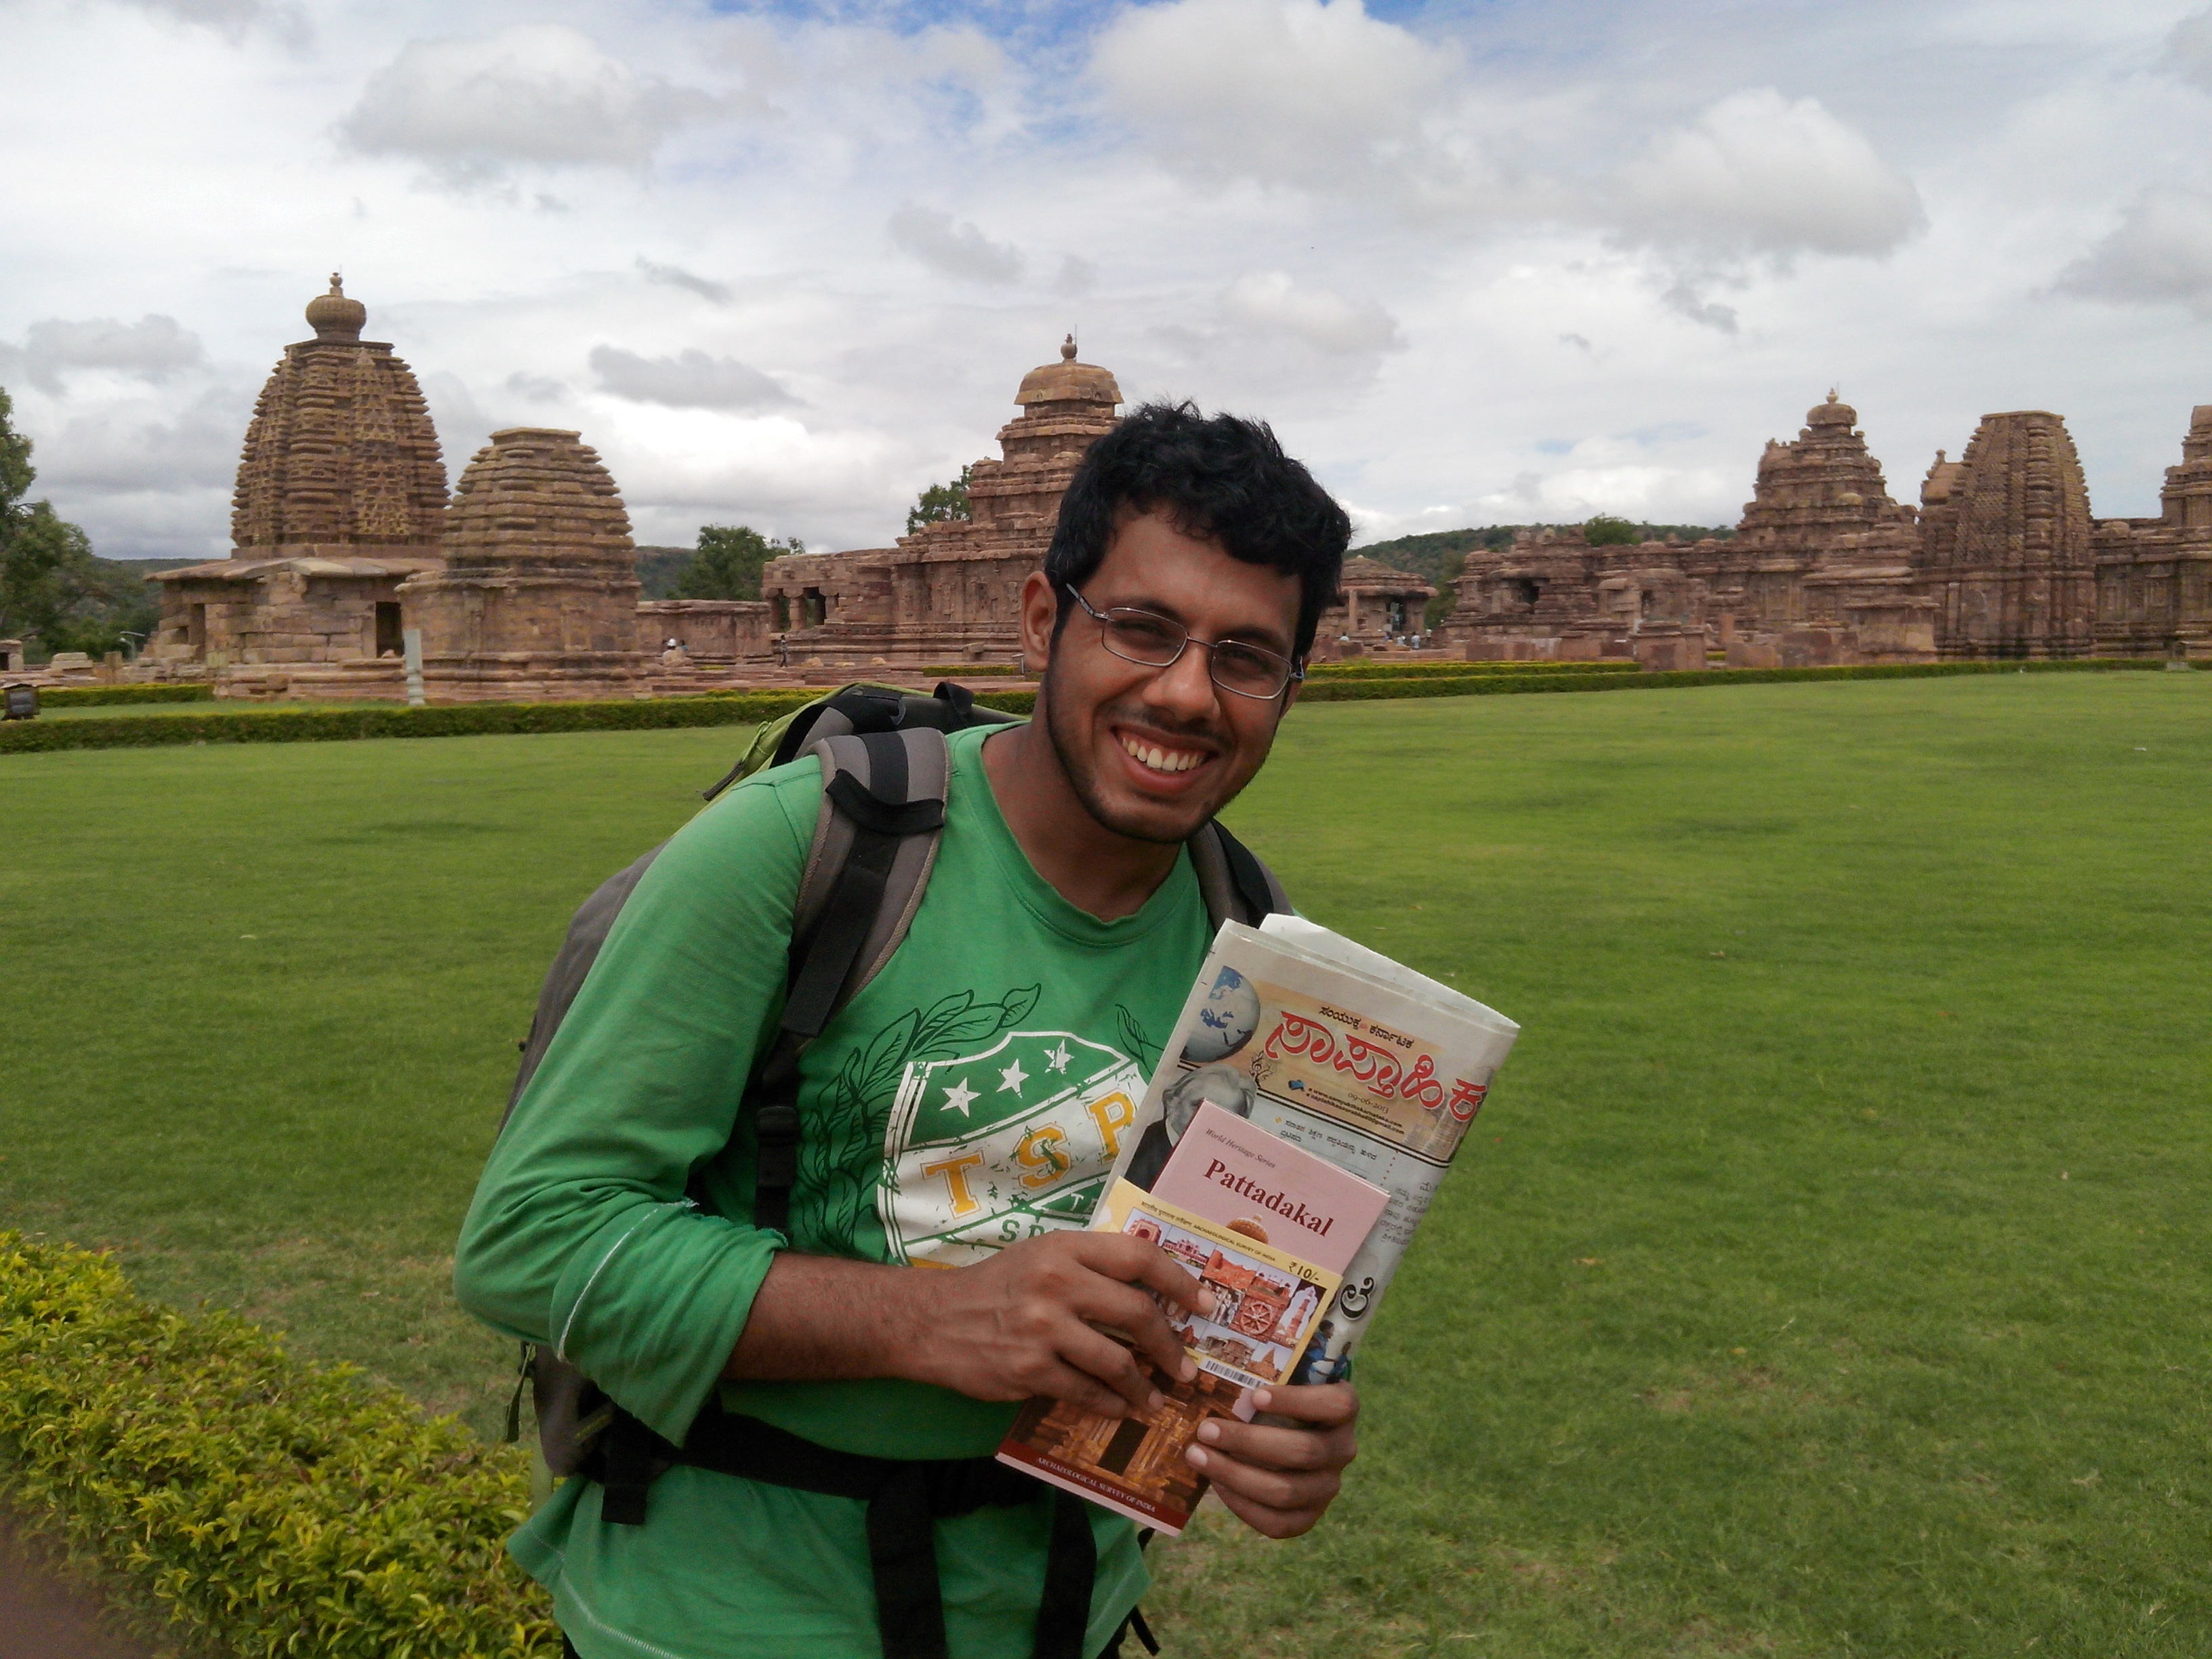 pattadakal - Arun Vasireddy